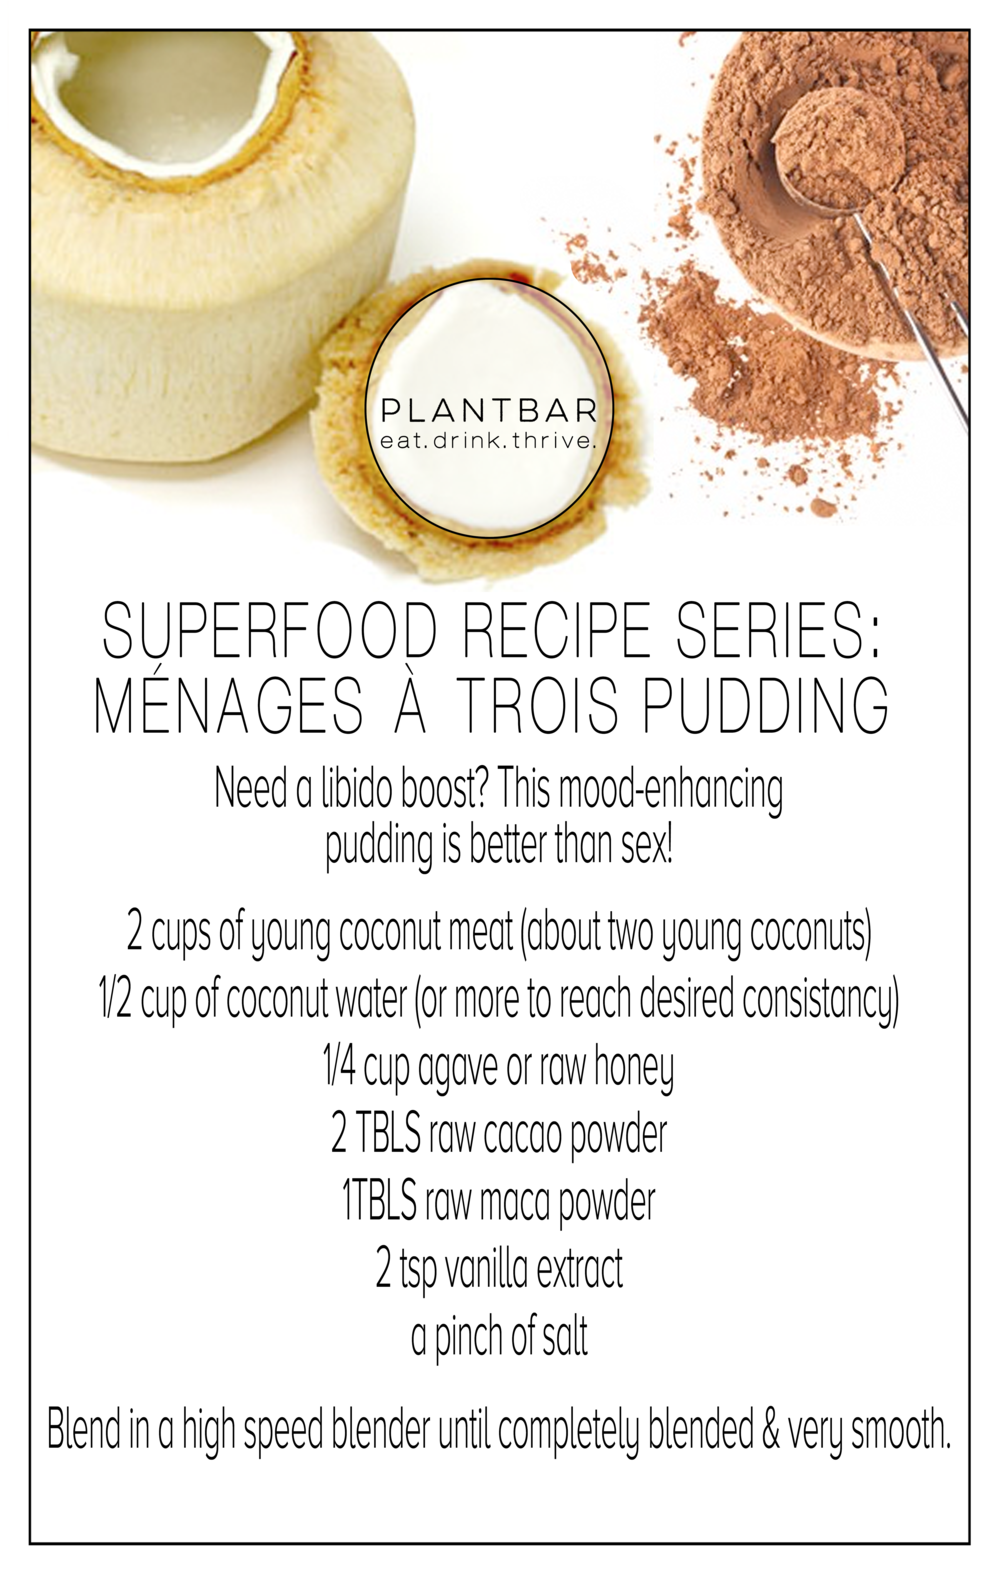 PLANTBAR-MenagesTroisPudding-Recipe